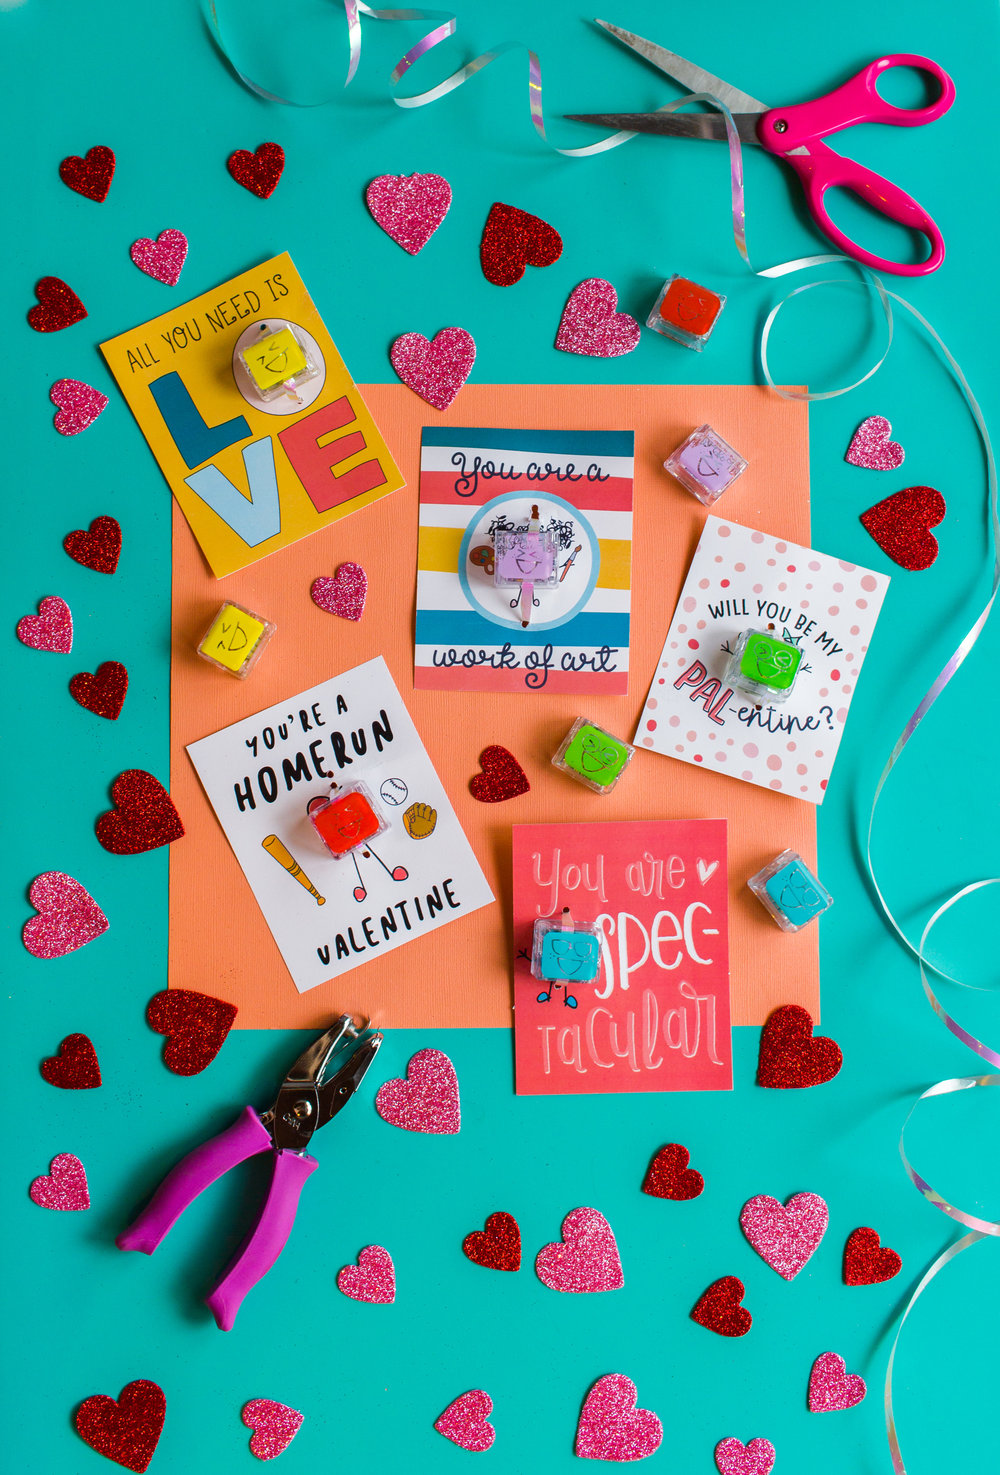 Supplies - * Glo Pals!* PAL-entines Day Card Printable* ribbon (we used the flat,curling kind)*scissors*hole punch (we used a mini)